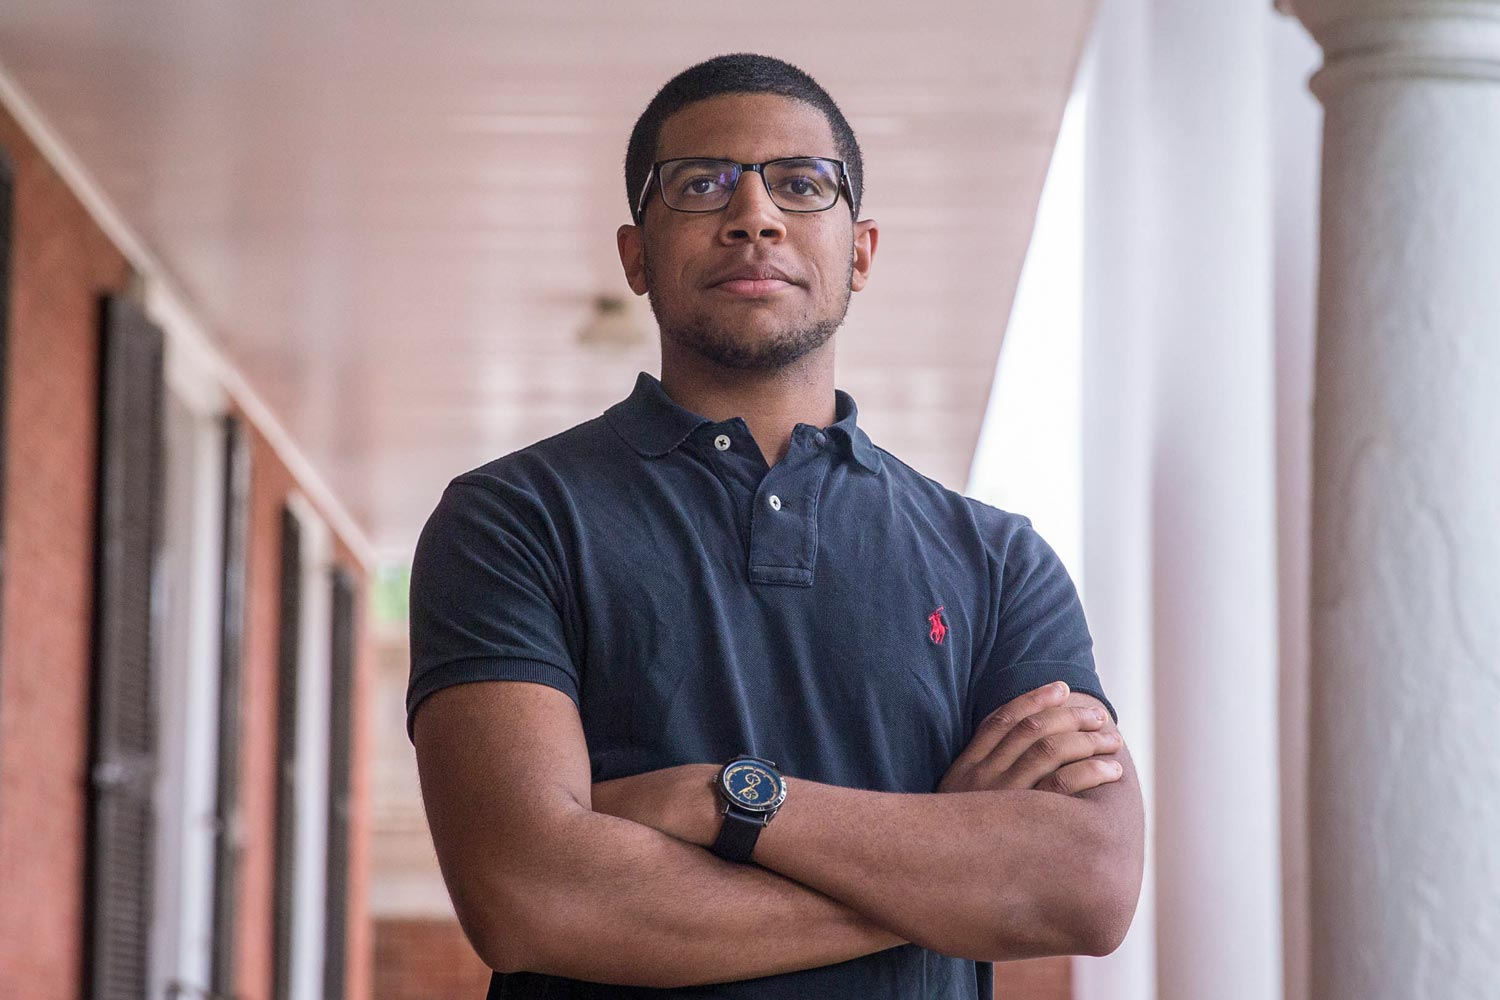 Wes Gobar is the president of UVA's Black Student Alliance.